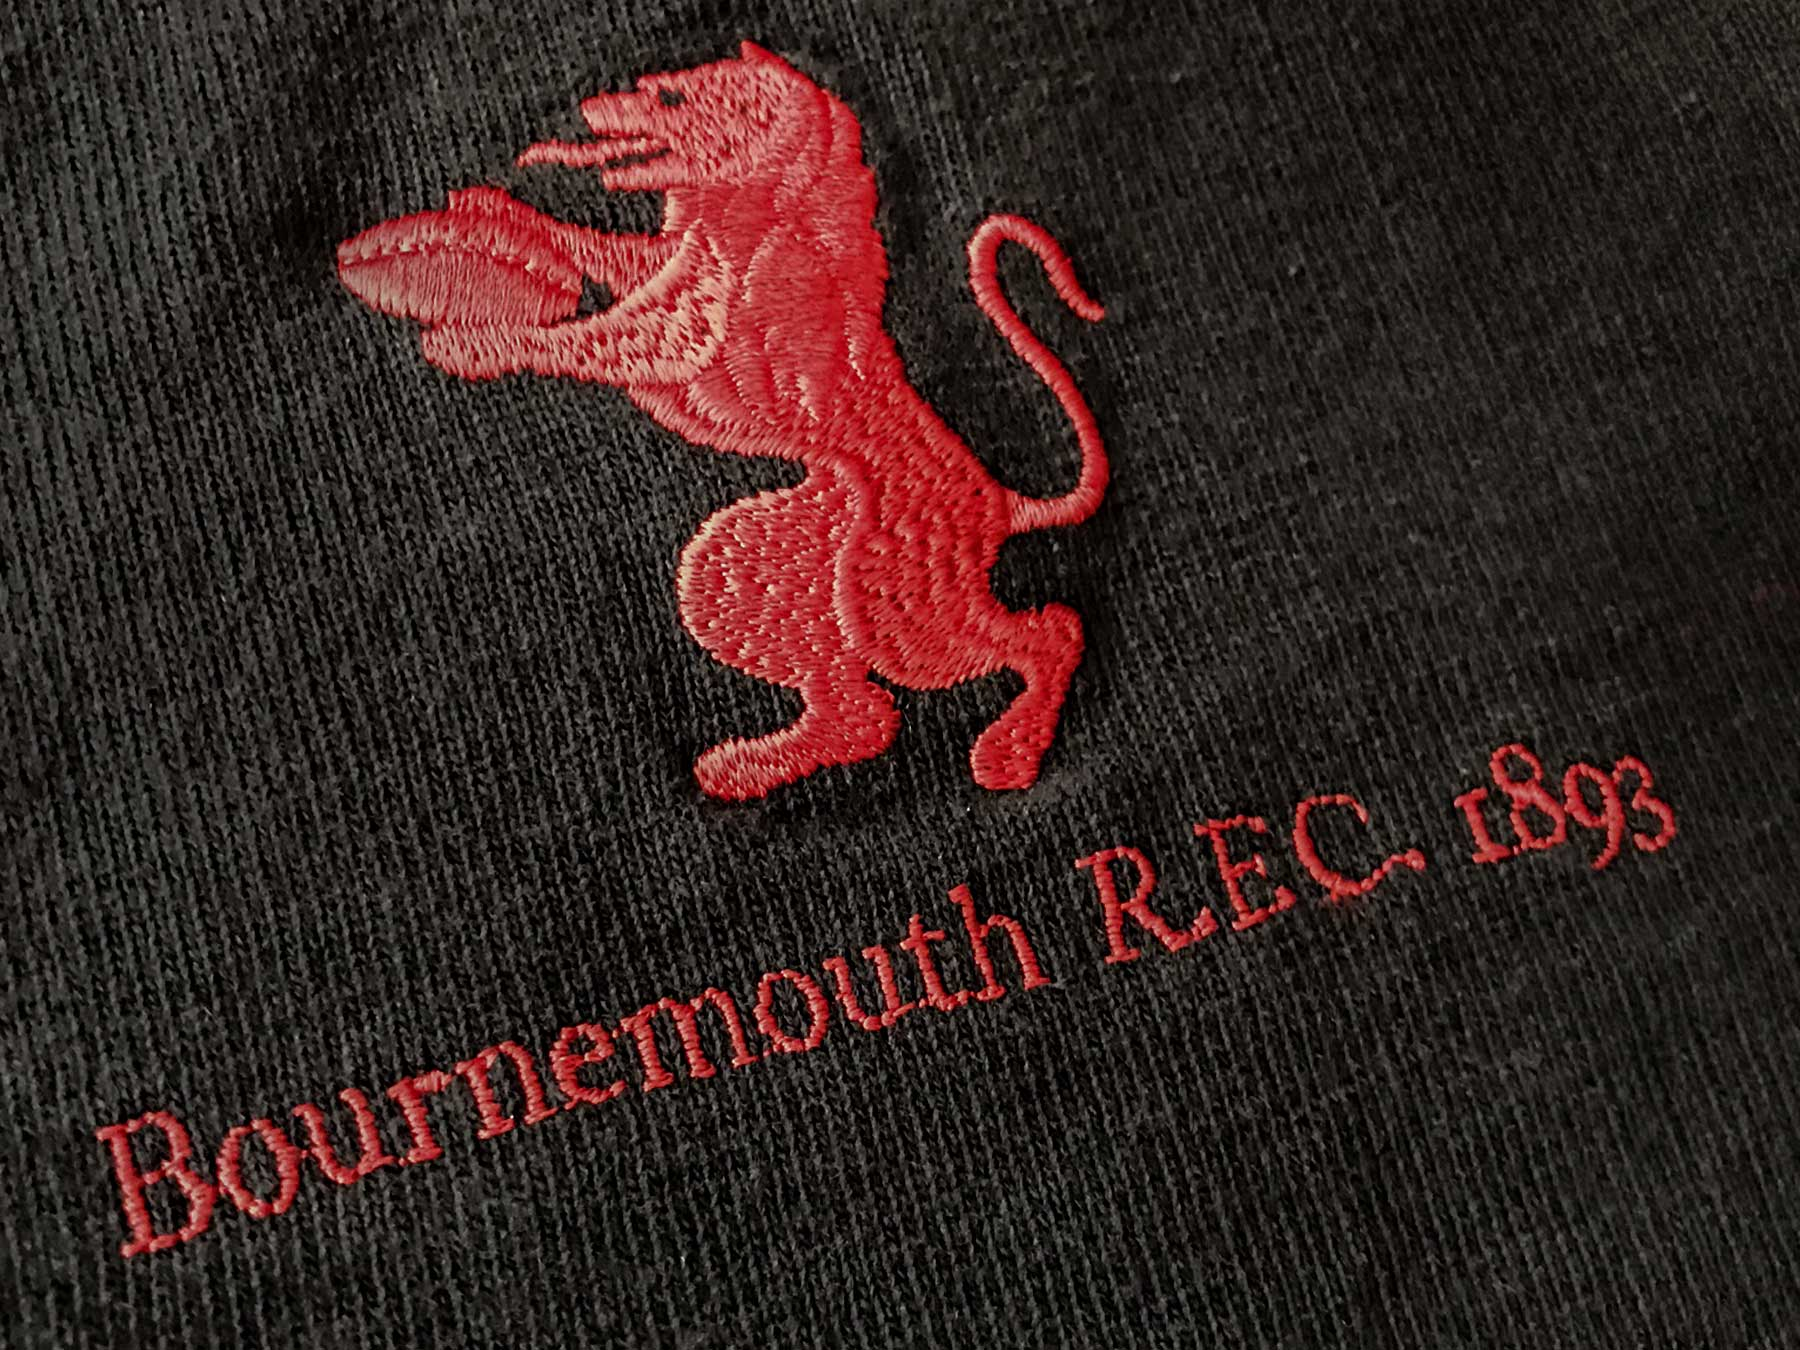 Bournemouth RFC logo 1893